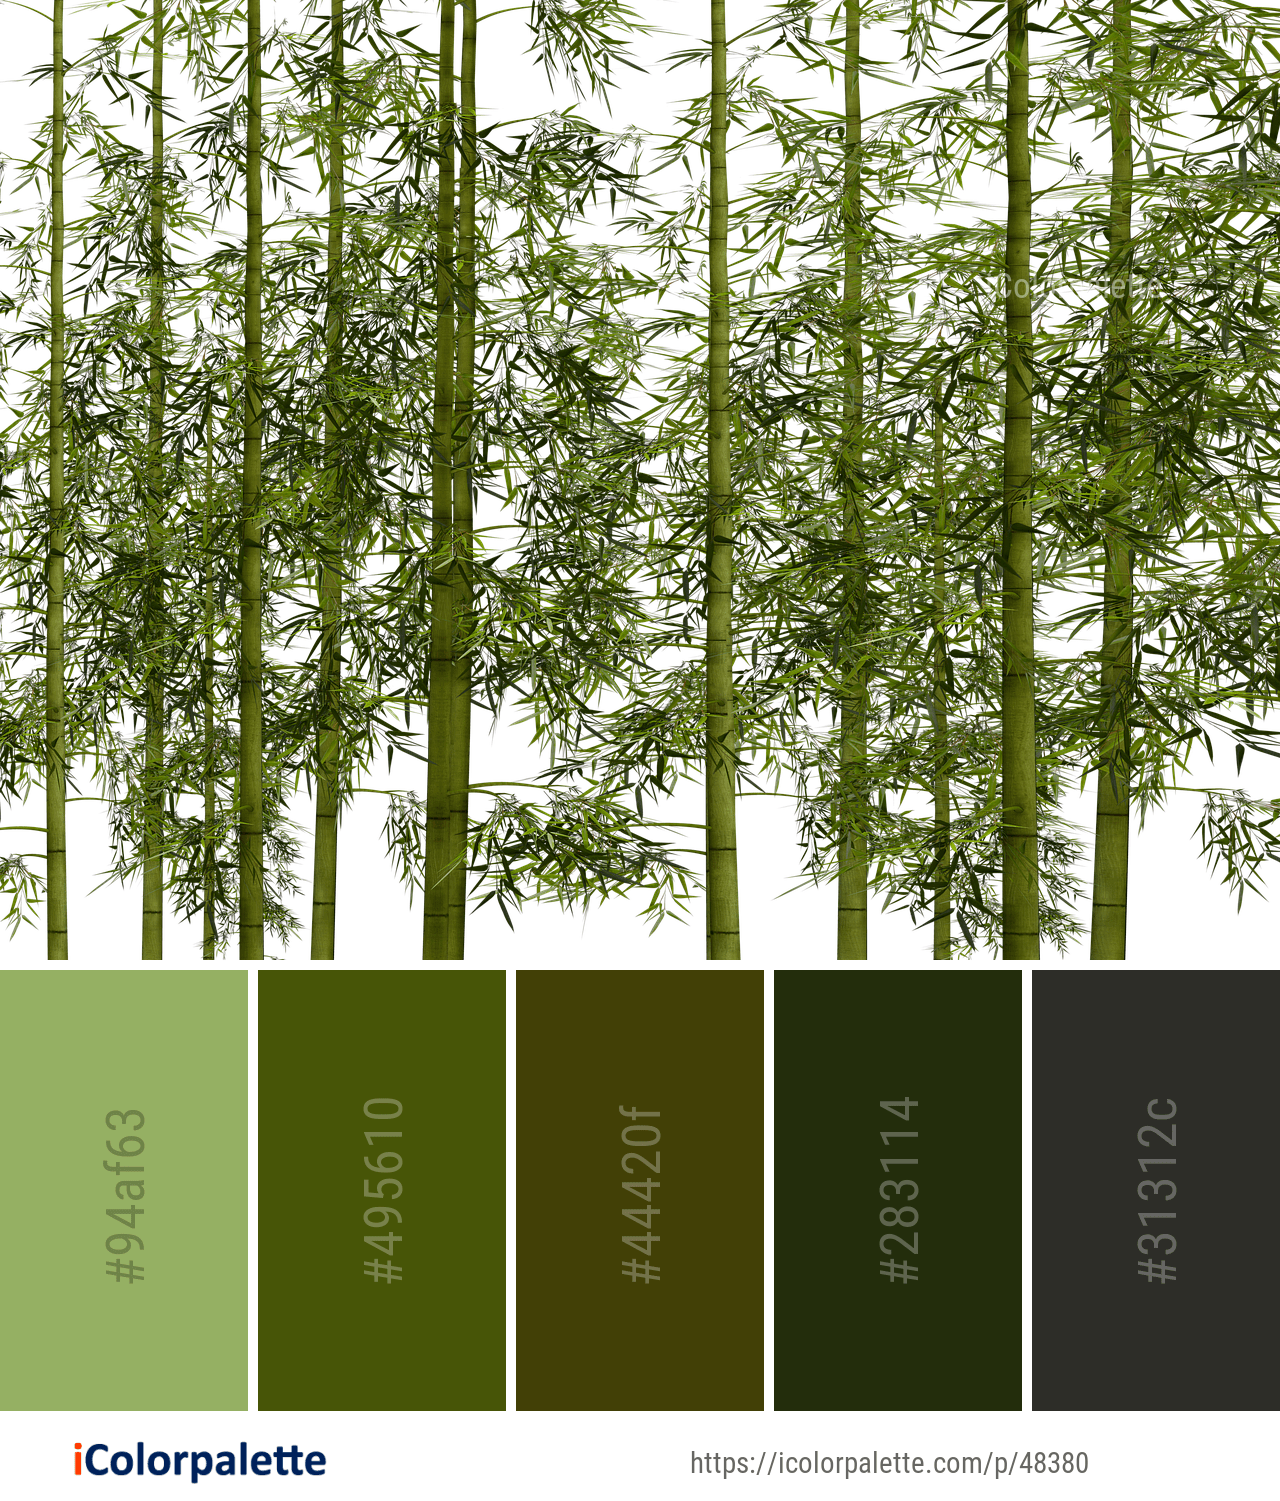 Color Palette ideas from 2 Bamboo Images   iColorpalette